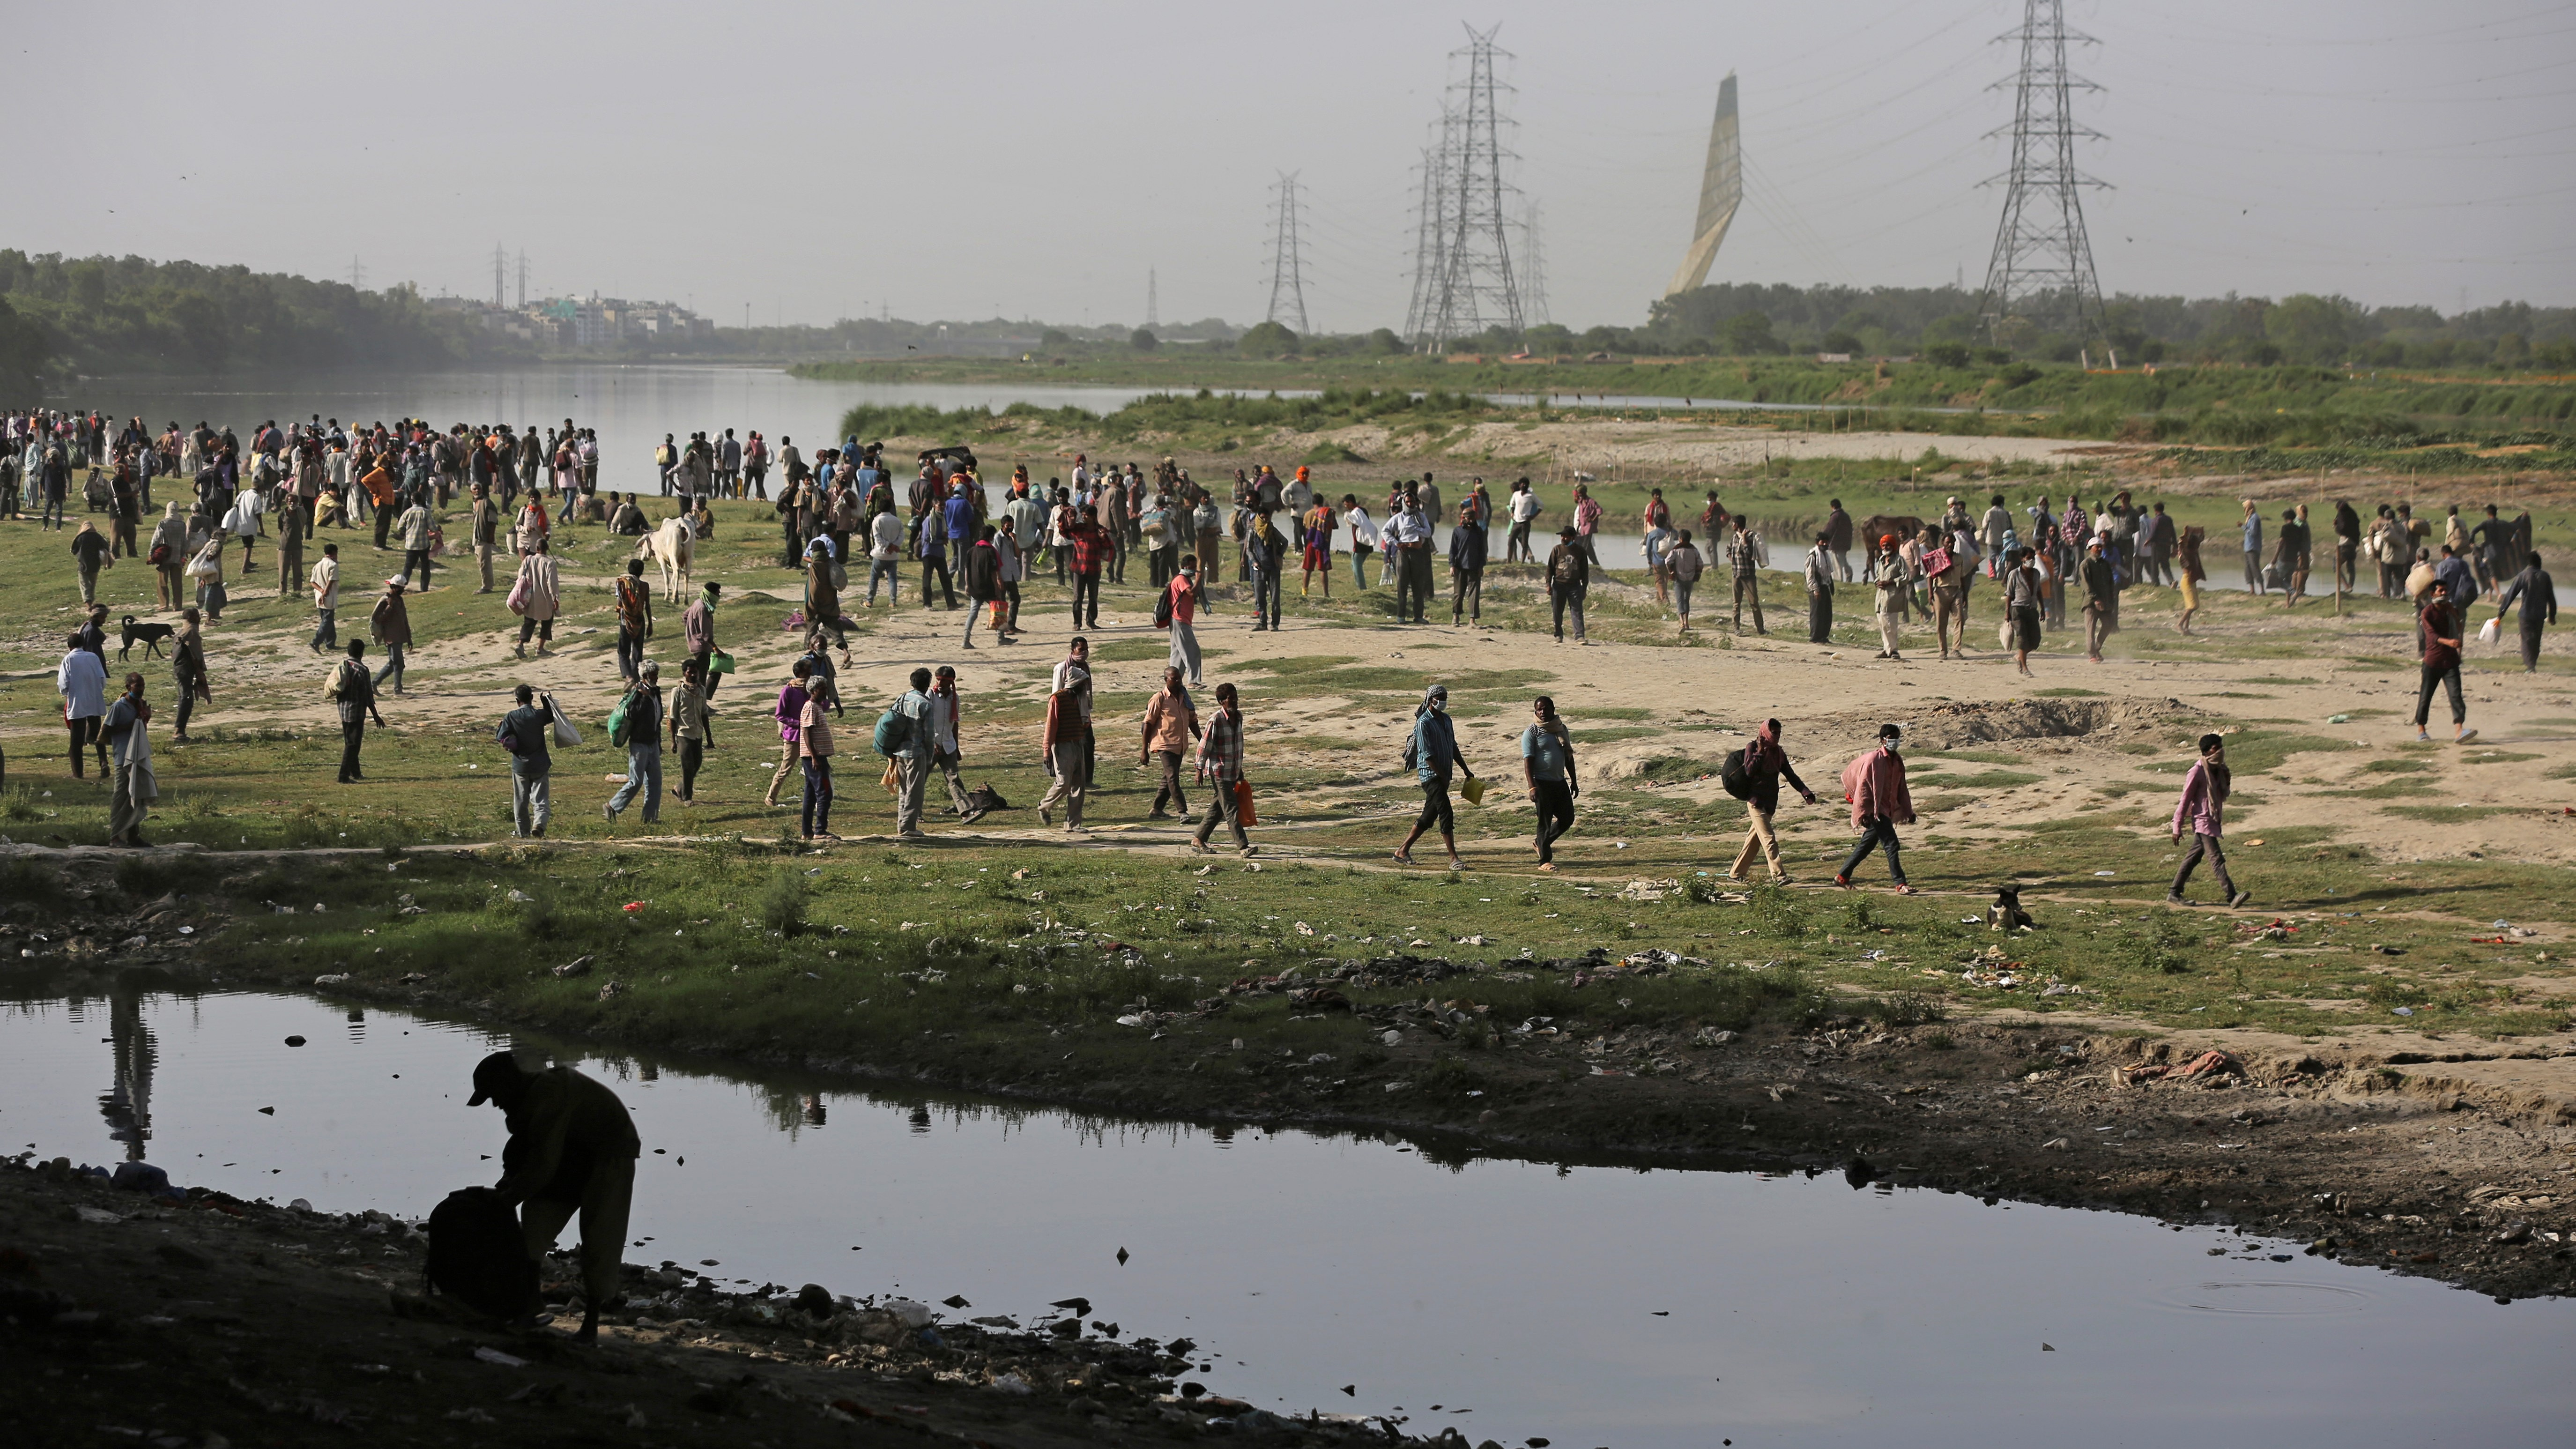 Migrants at Yamuna river bank in Delhi